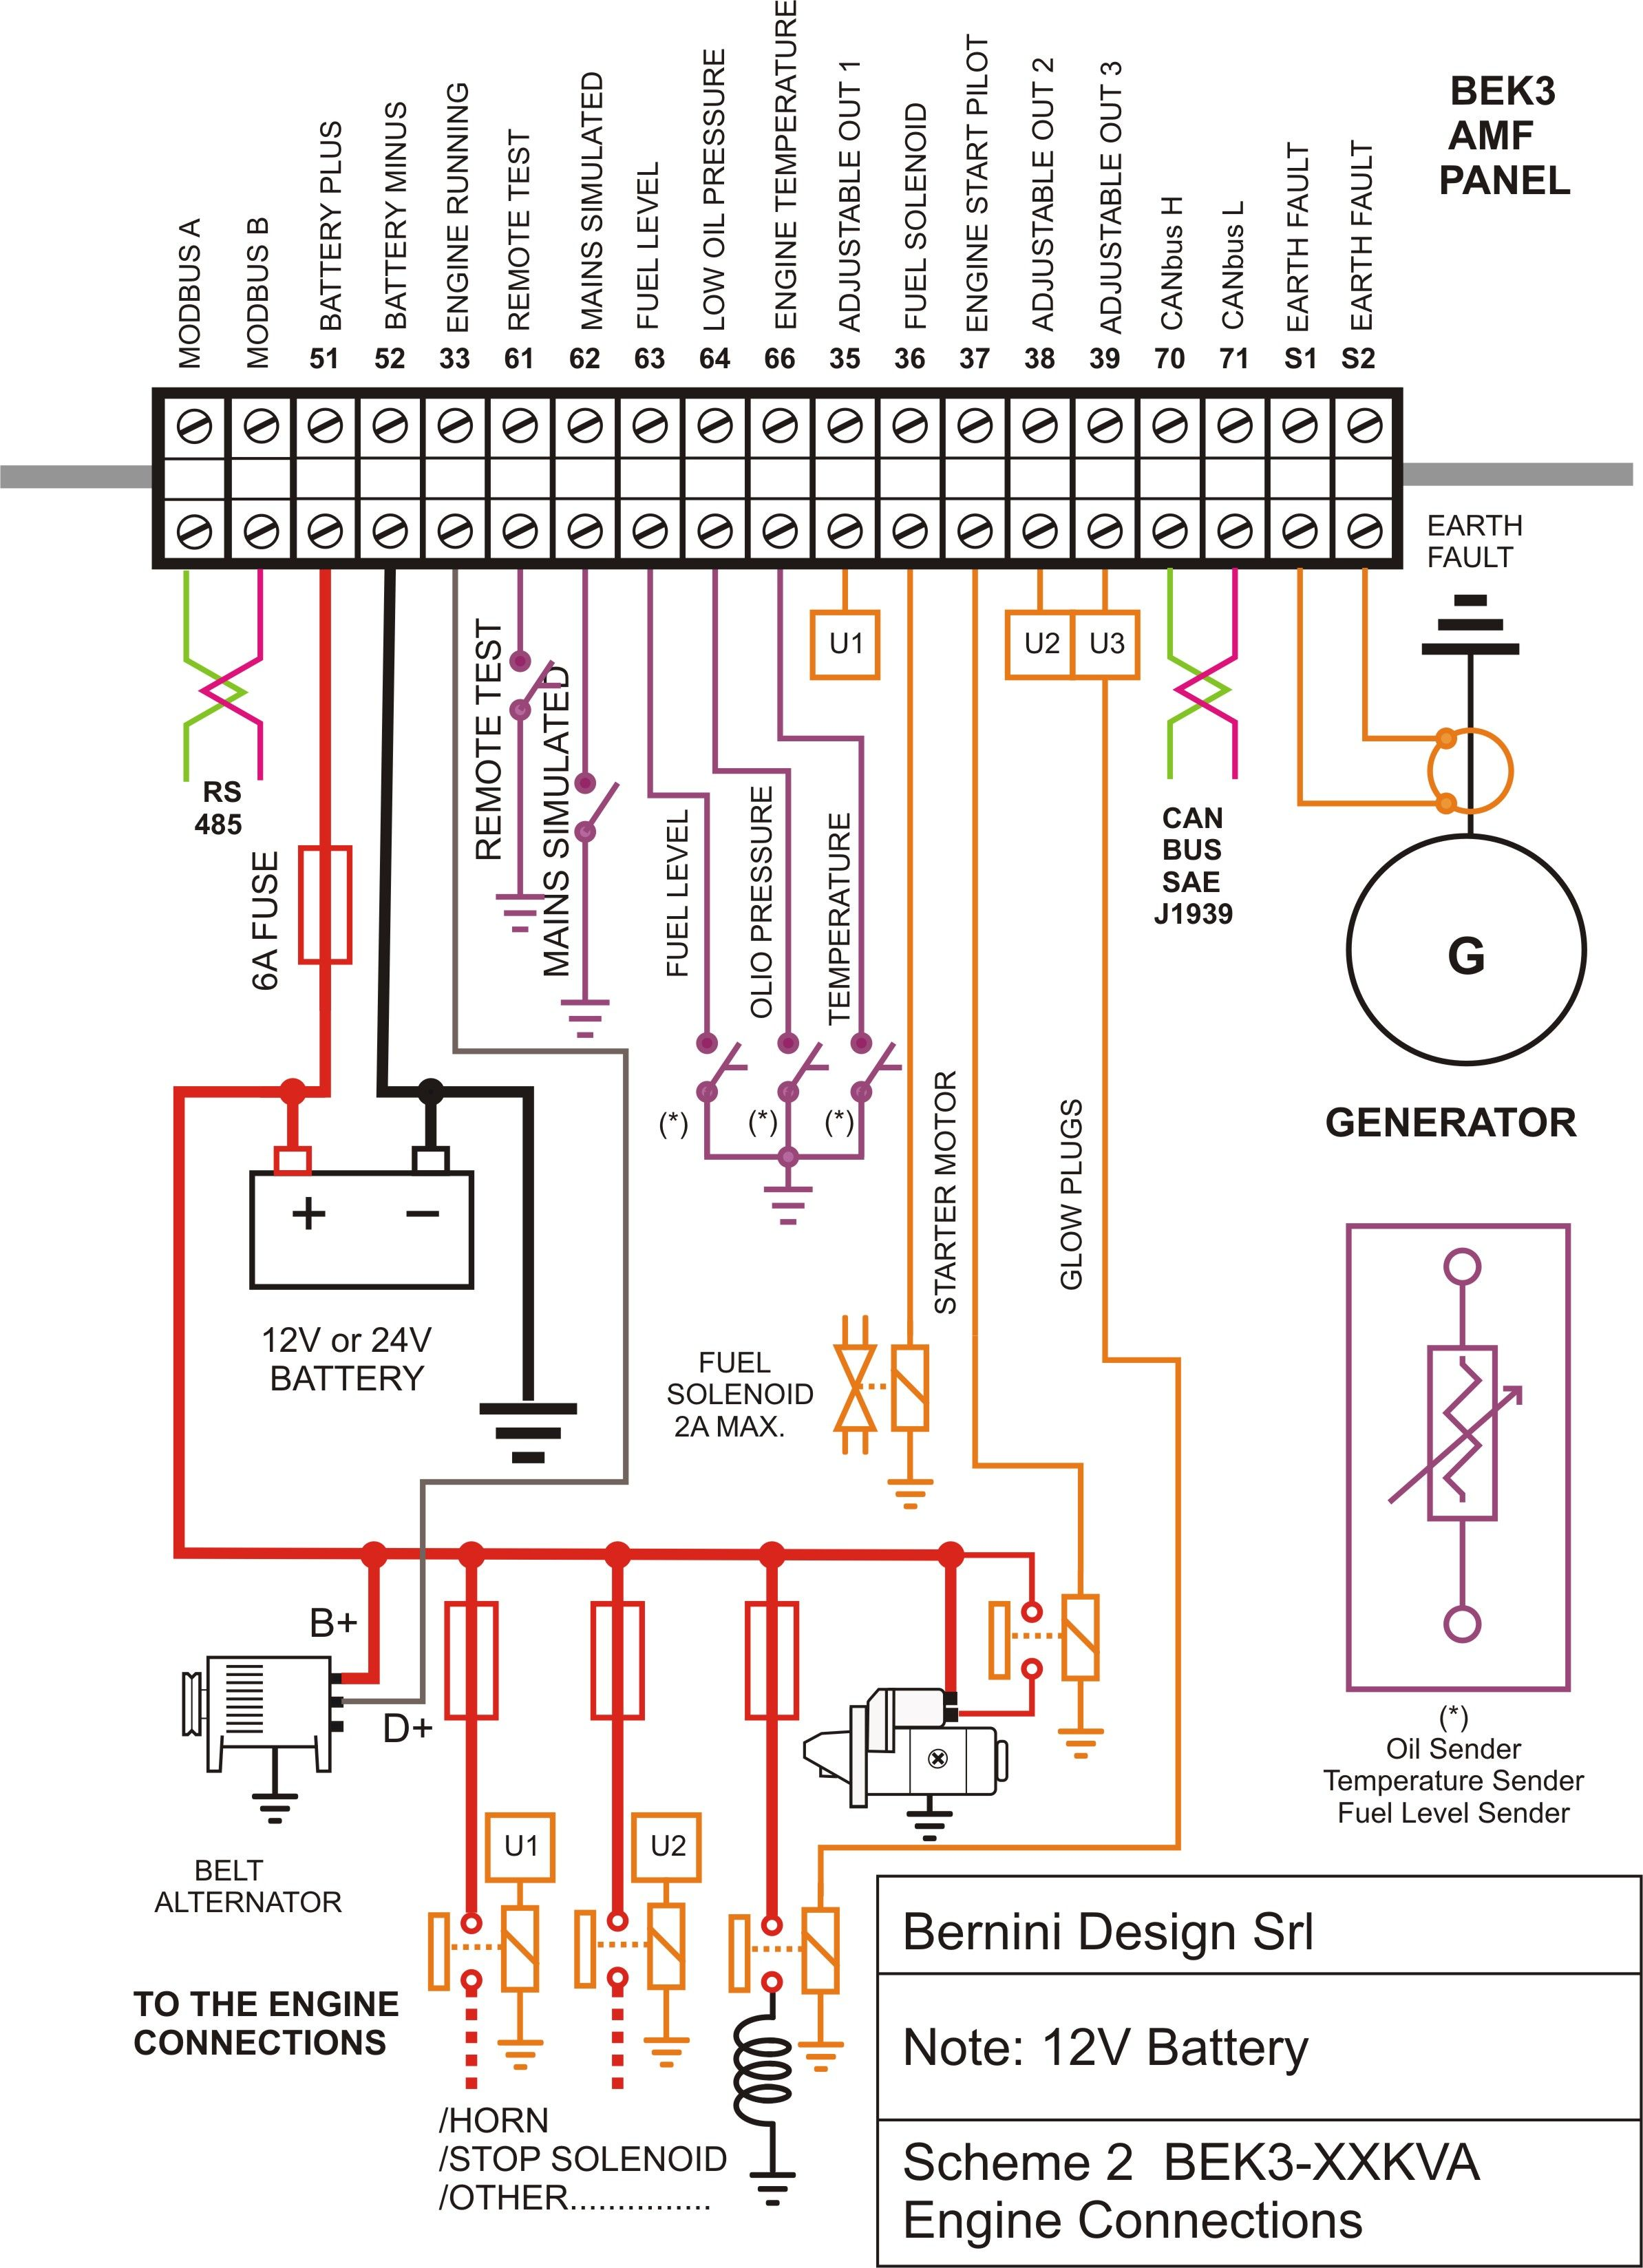 diesel generator control panel wiring diagram Engine Connections ...